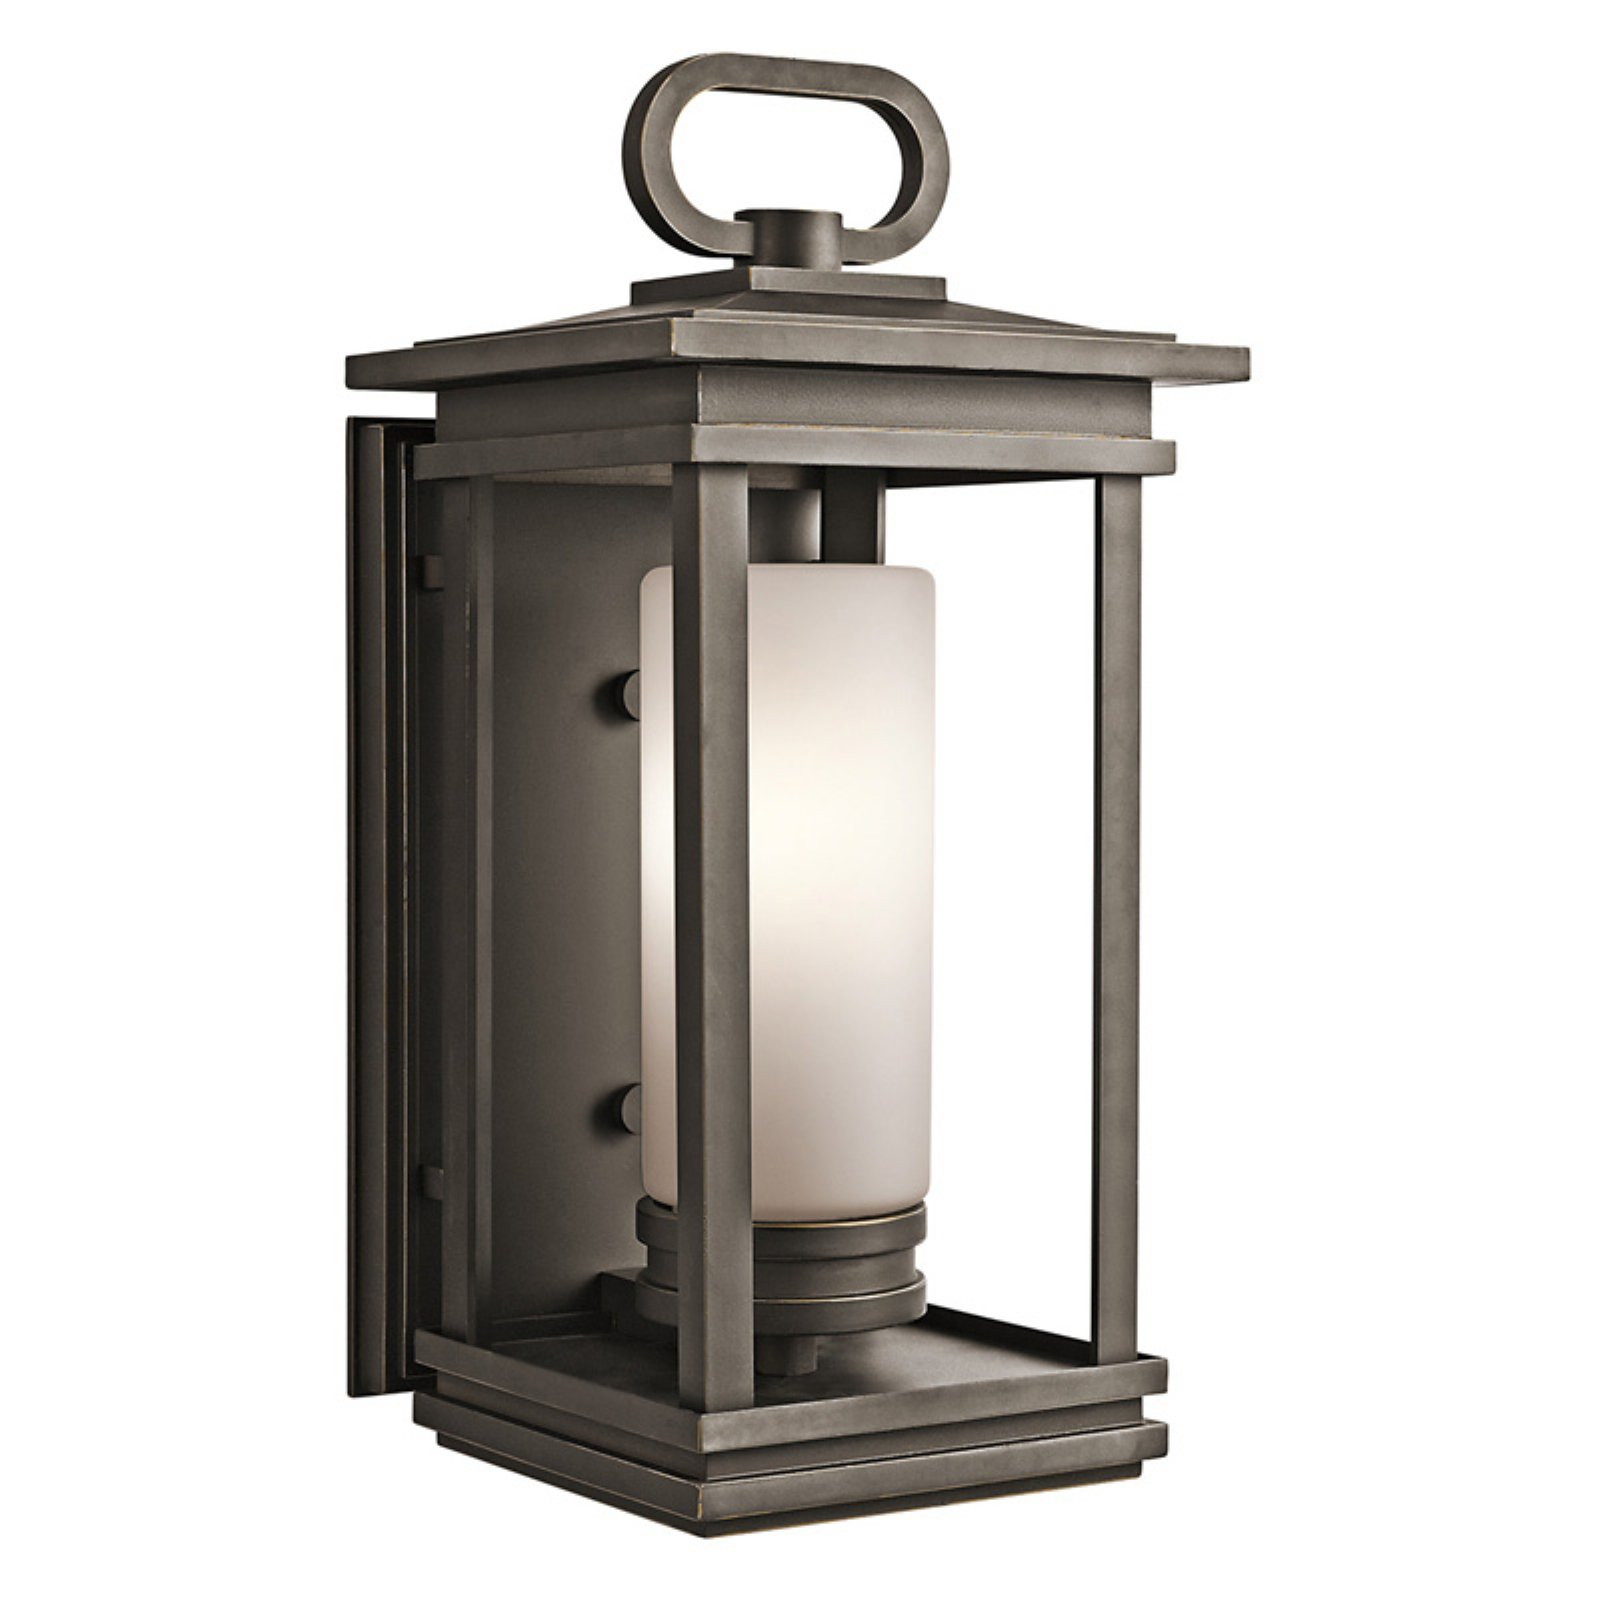 Kichler South Hope 4947 Outdoor Wall Sconce